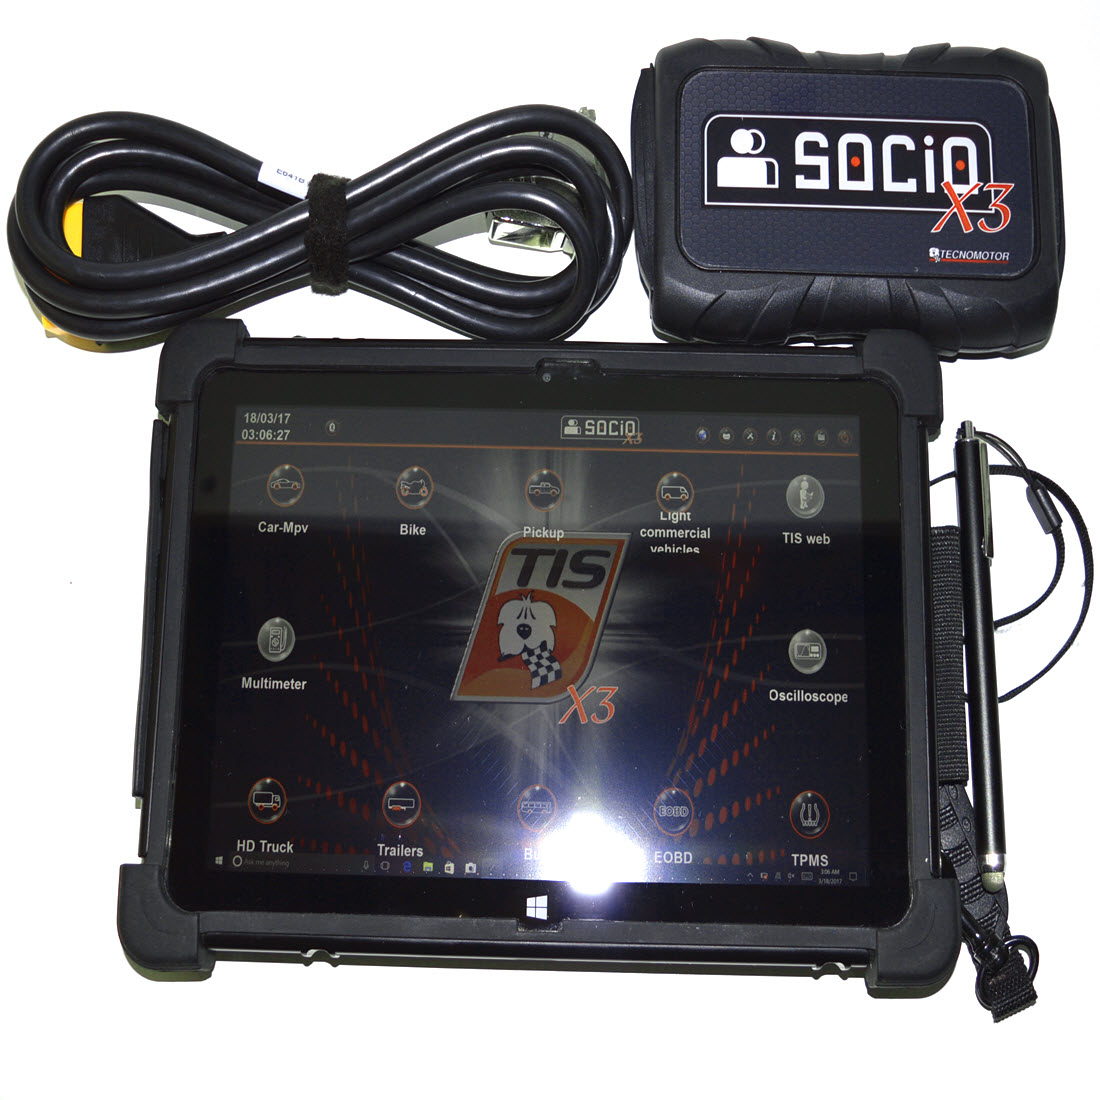 Tenomotor socio x3 pc based diagnostic tool with rugged for Motor vehicle diagnostic machine